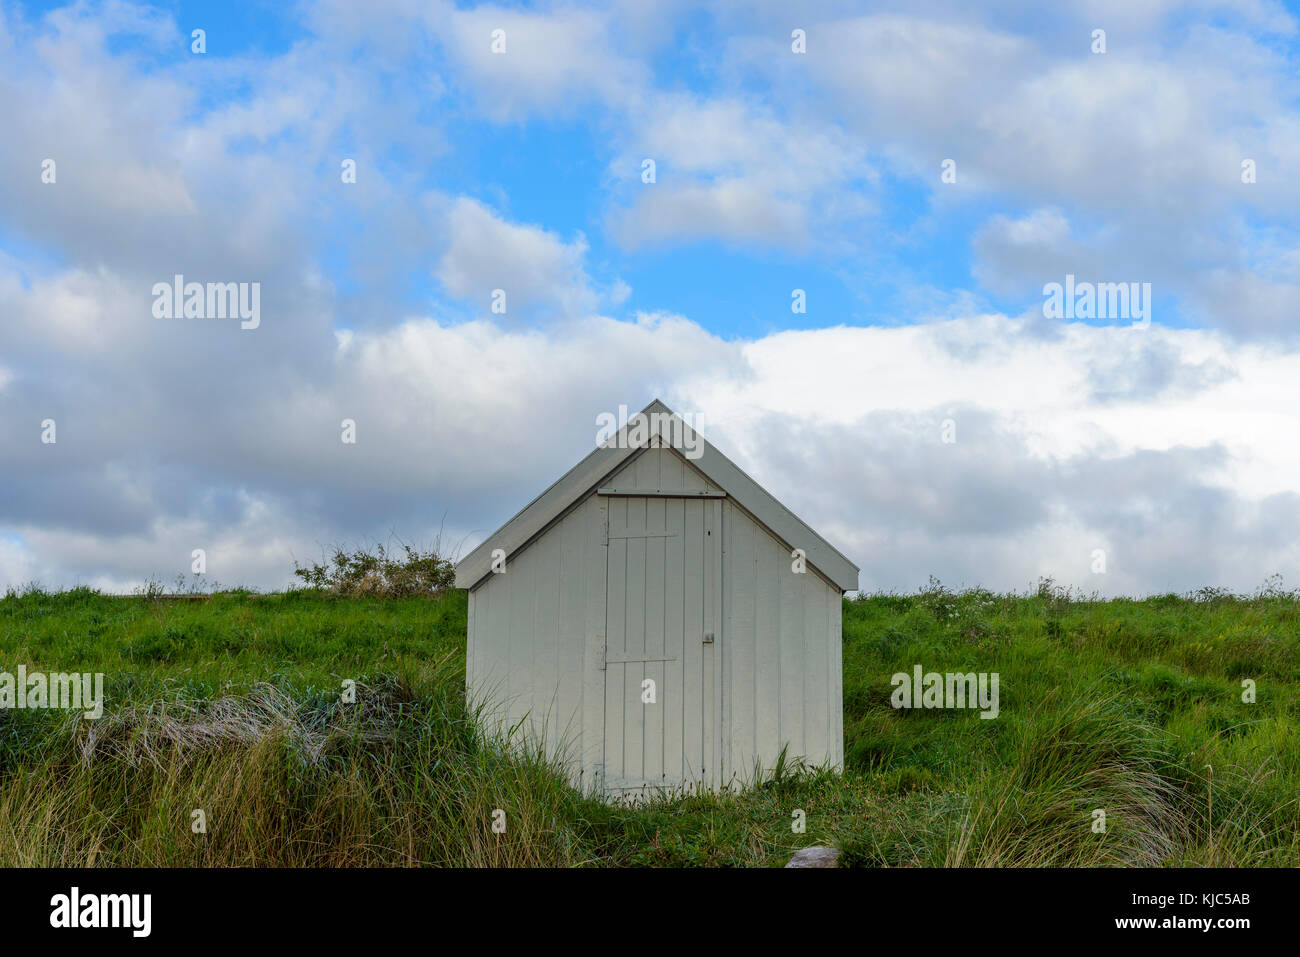 Fisherman's hut on the dune heath at the beach in Bamburgh in Northumberland, England, United Kingdom - Stock Image